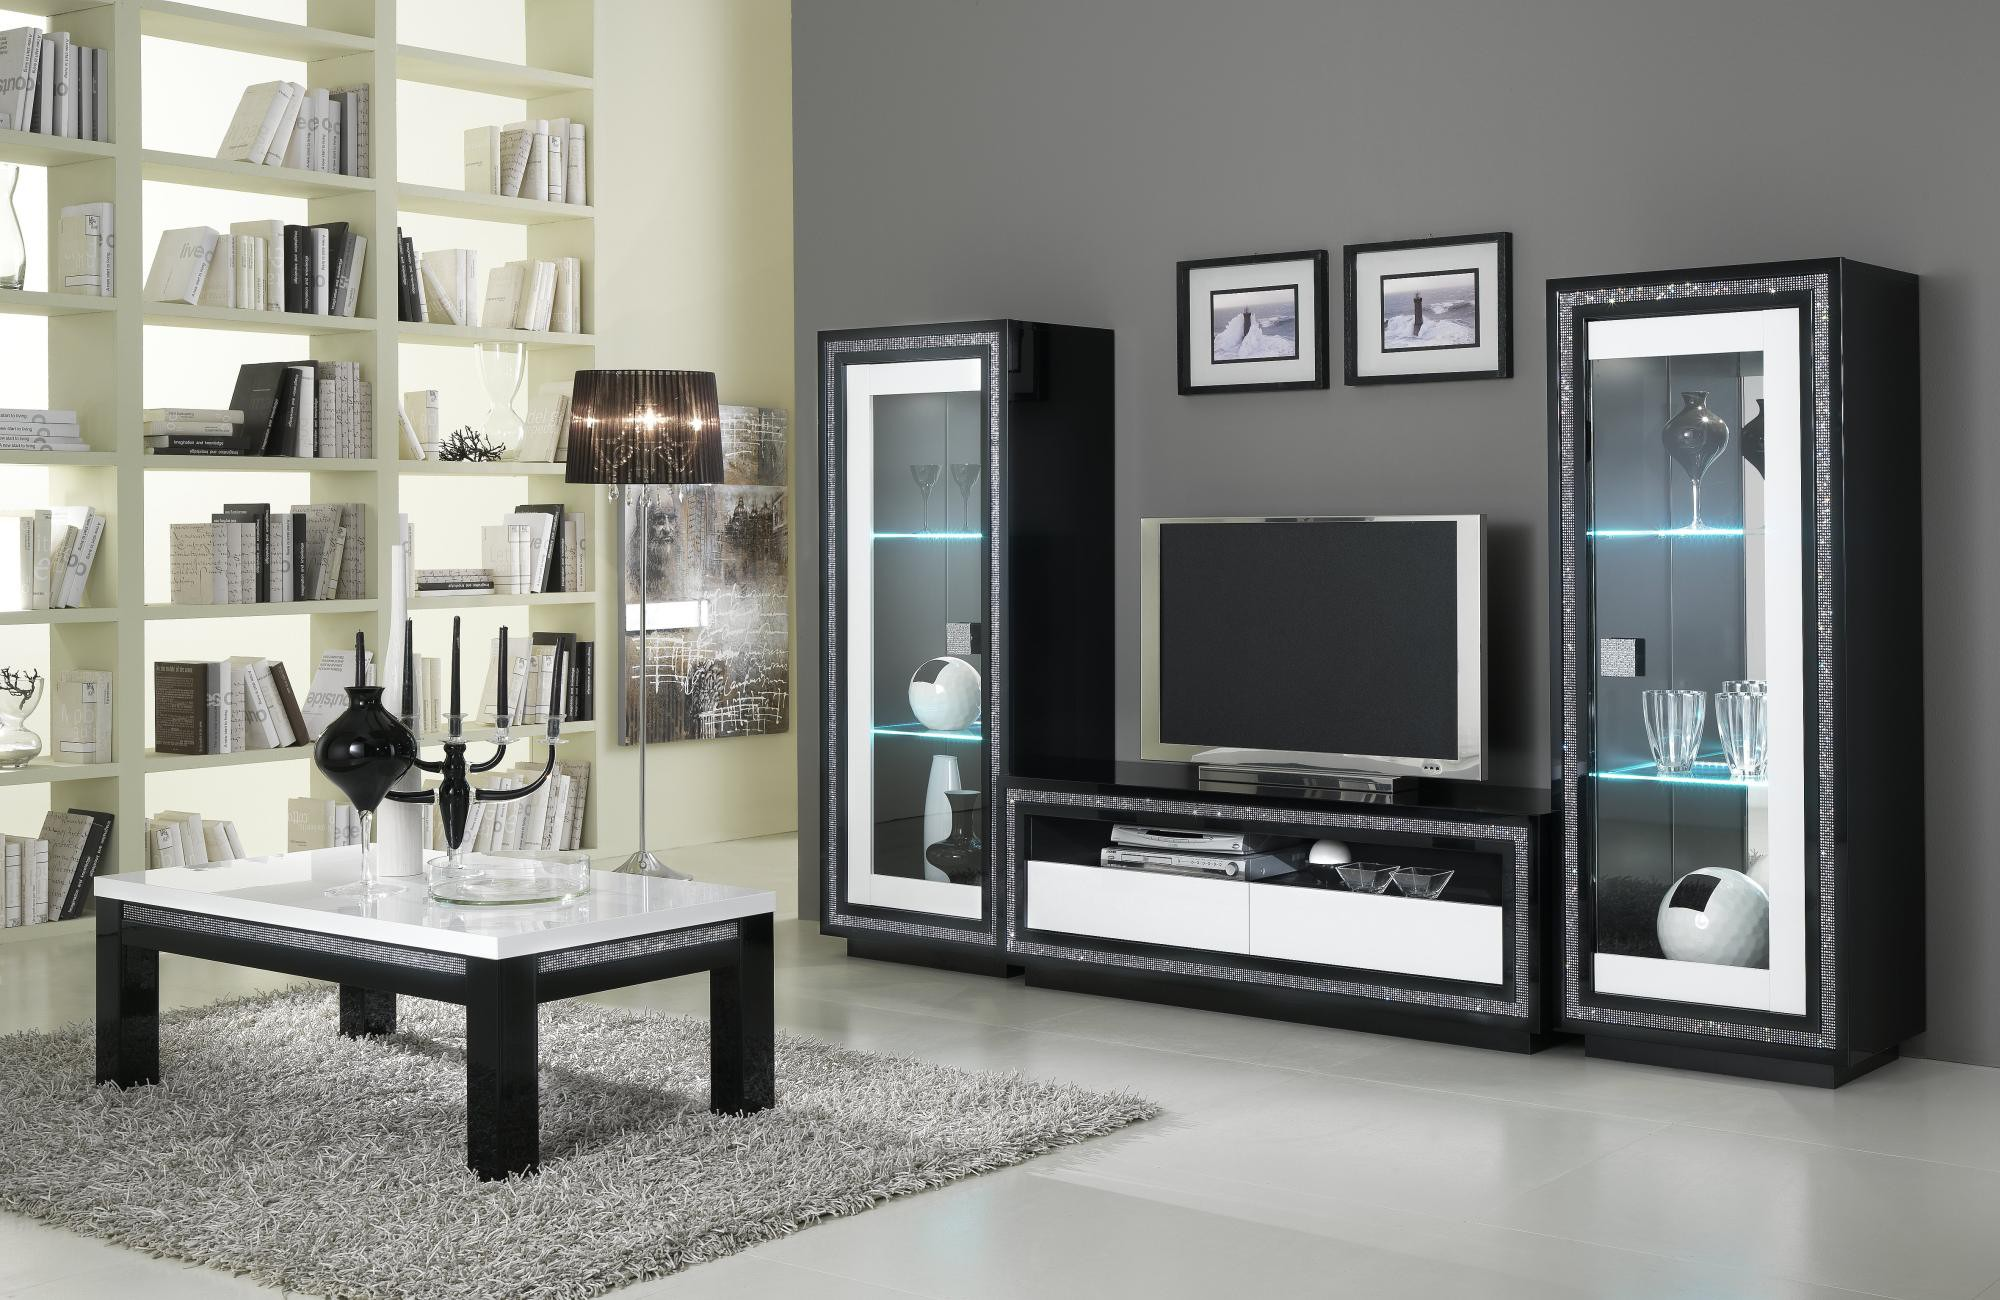 meuble salon tele id es de d coration int rieure french decor. Black Bedroom Furniture Sets. Home Design Ideas